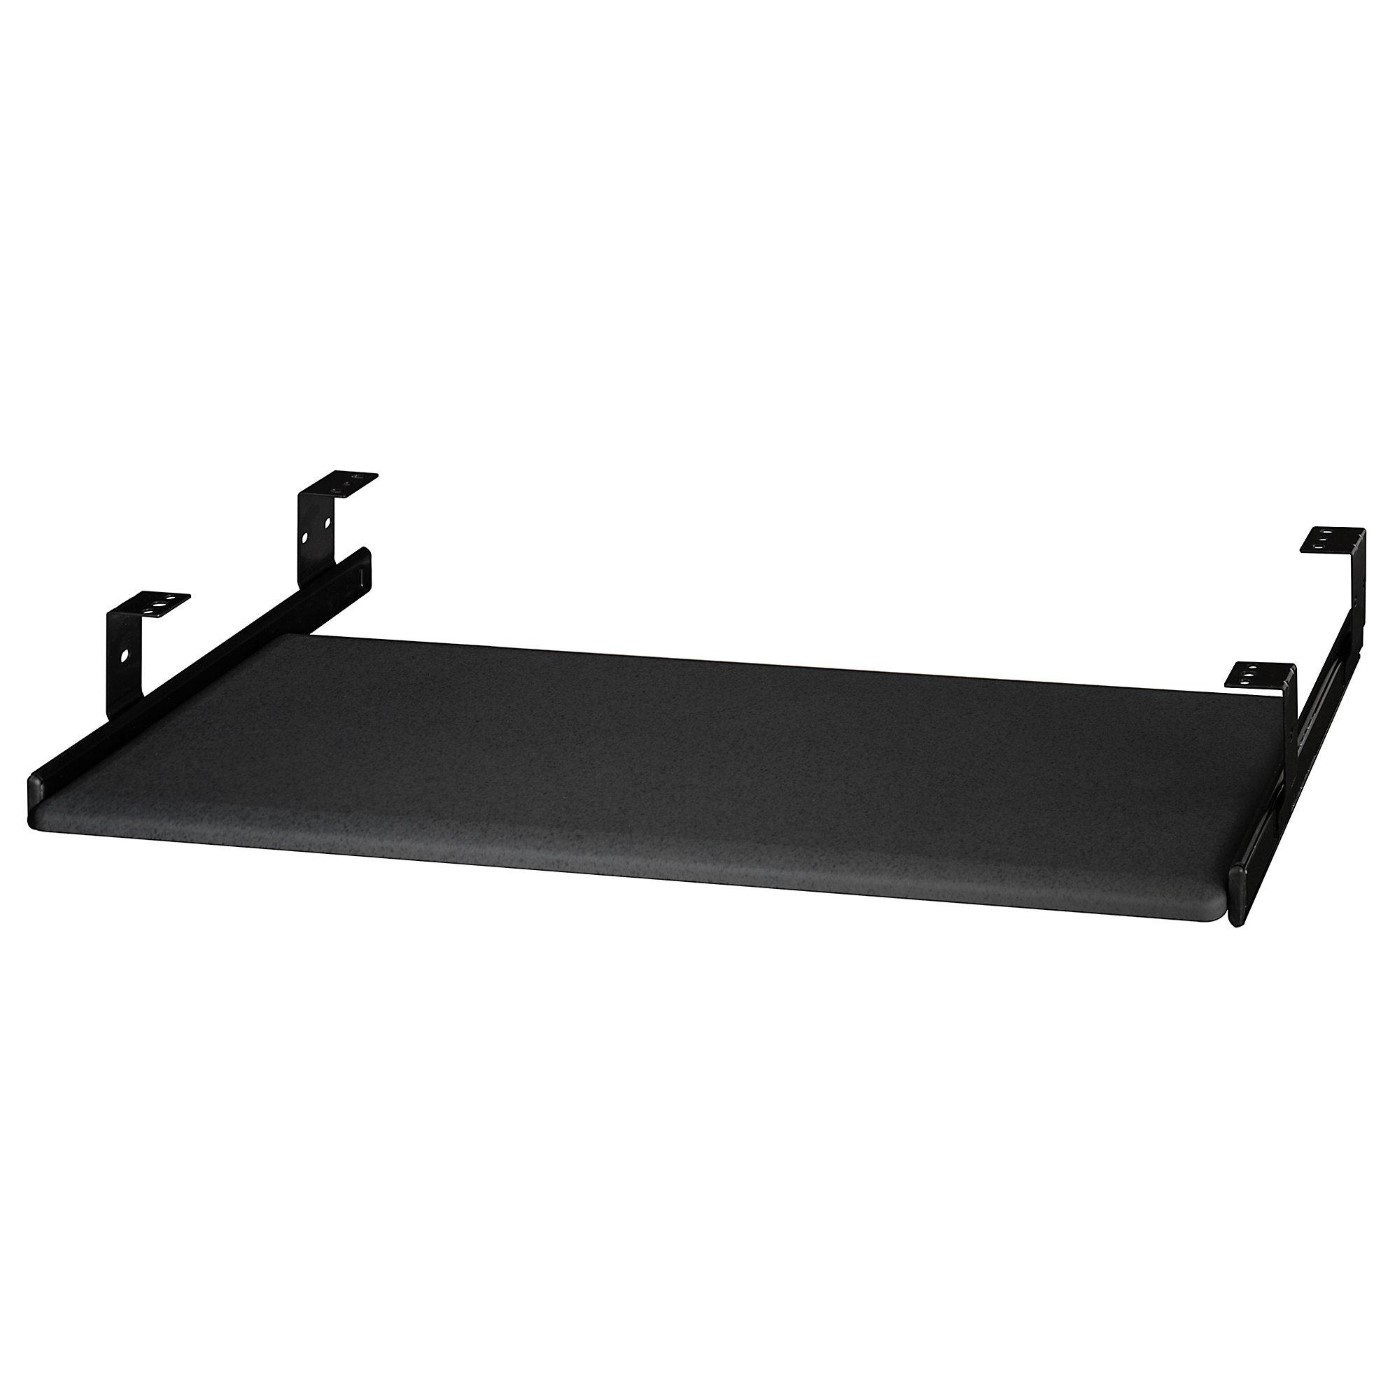 <font color=#c60><b>BUSH BUSINESS FURNITURE UNIVERSAL KEYBOARD SHELF. FREE SHIPPING</font></b>